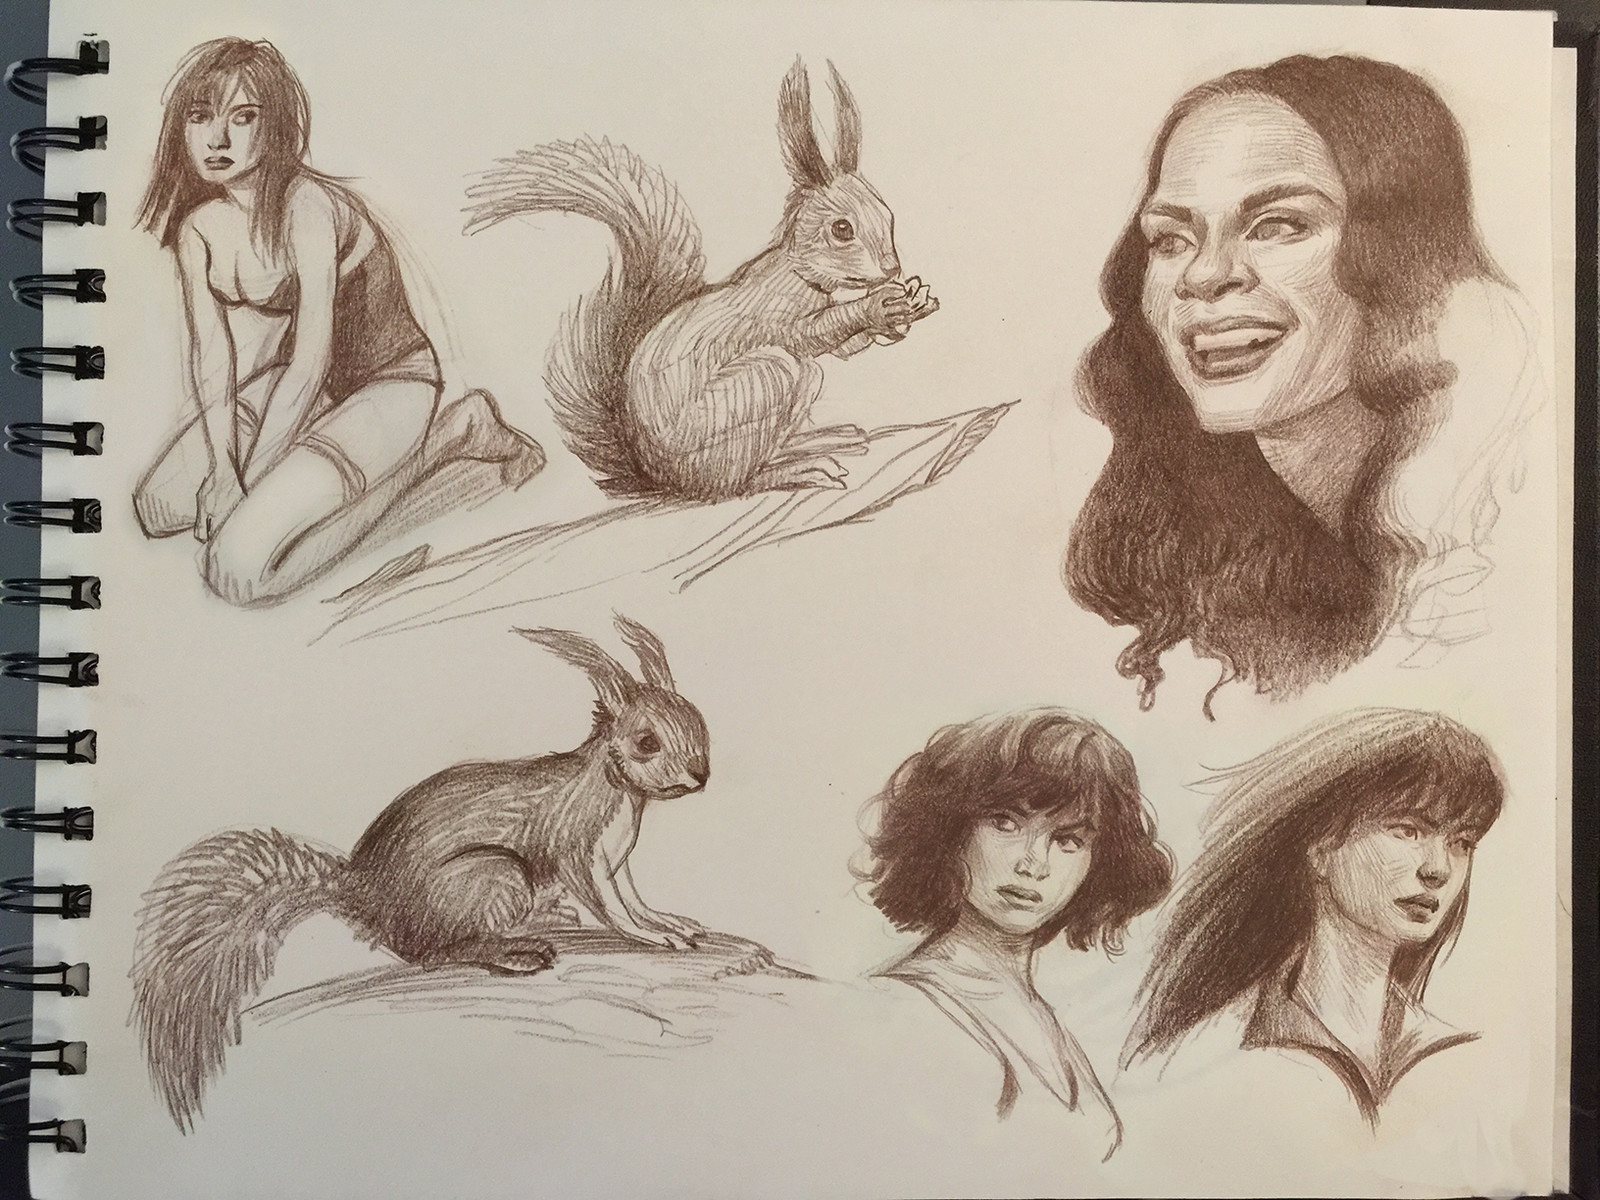 Squirrels and Girls